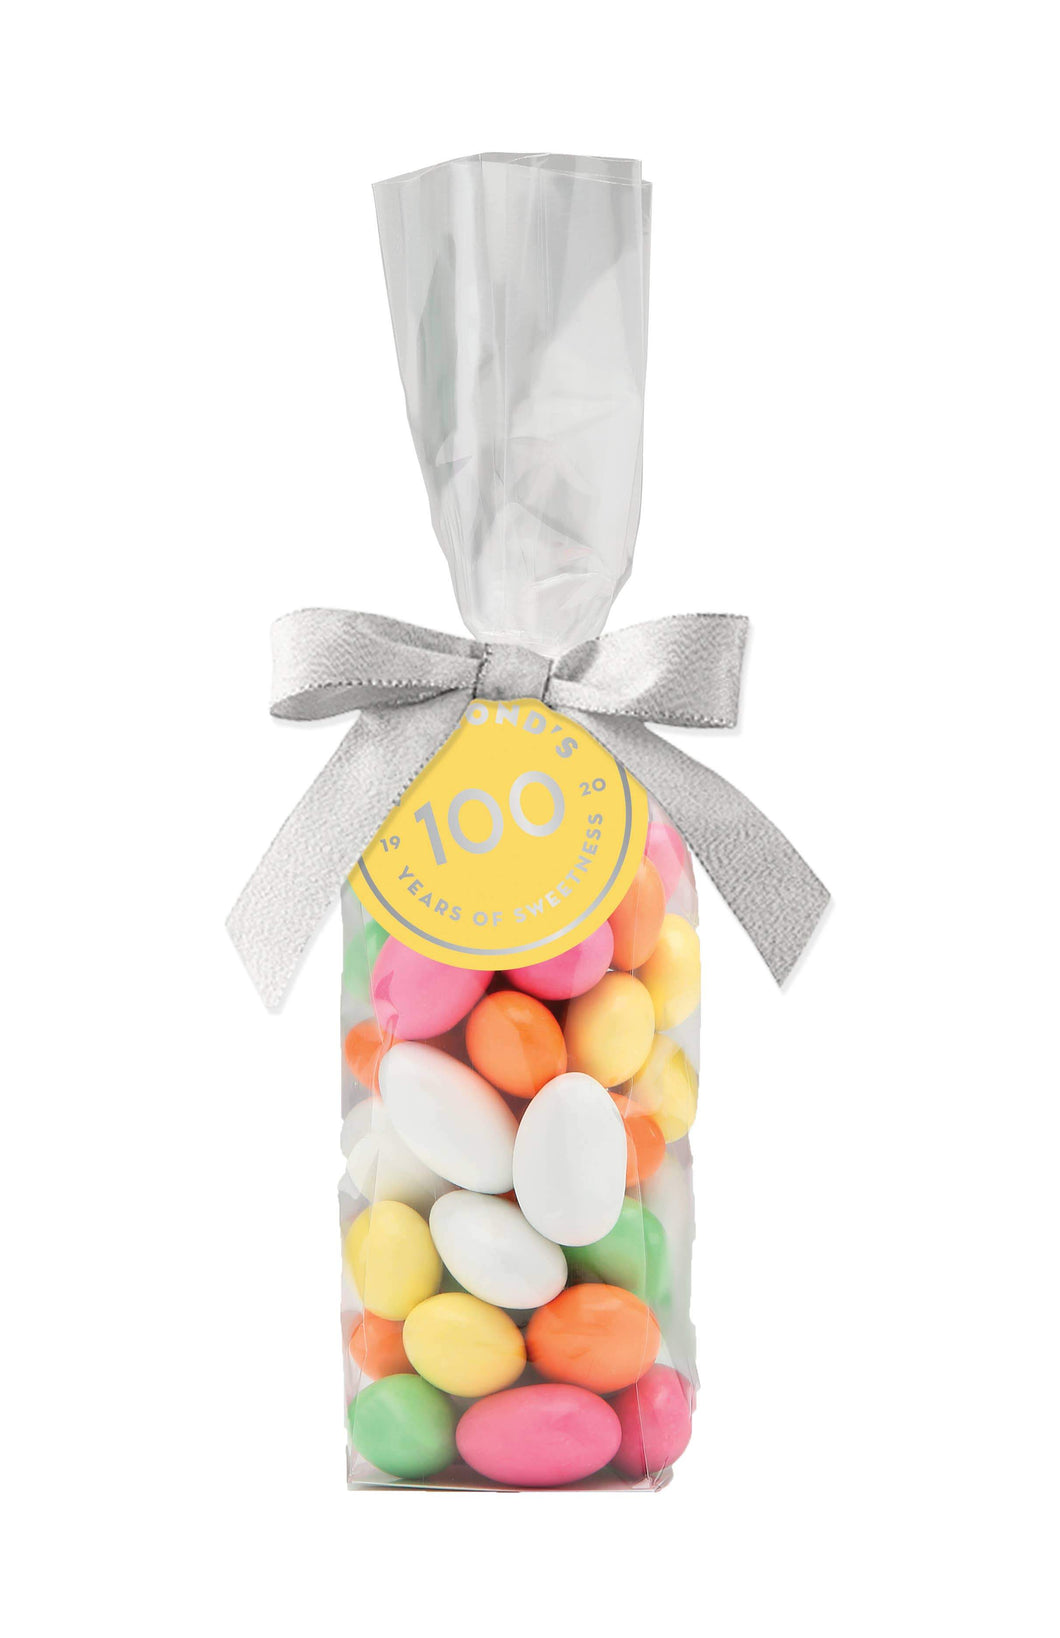 Jordan Almonds 6oz Gift Bags